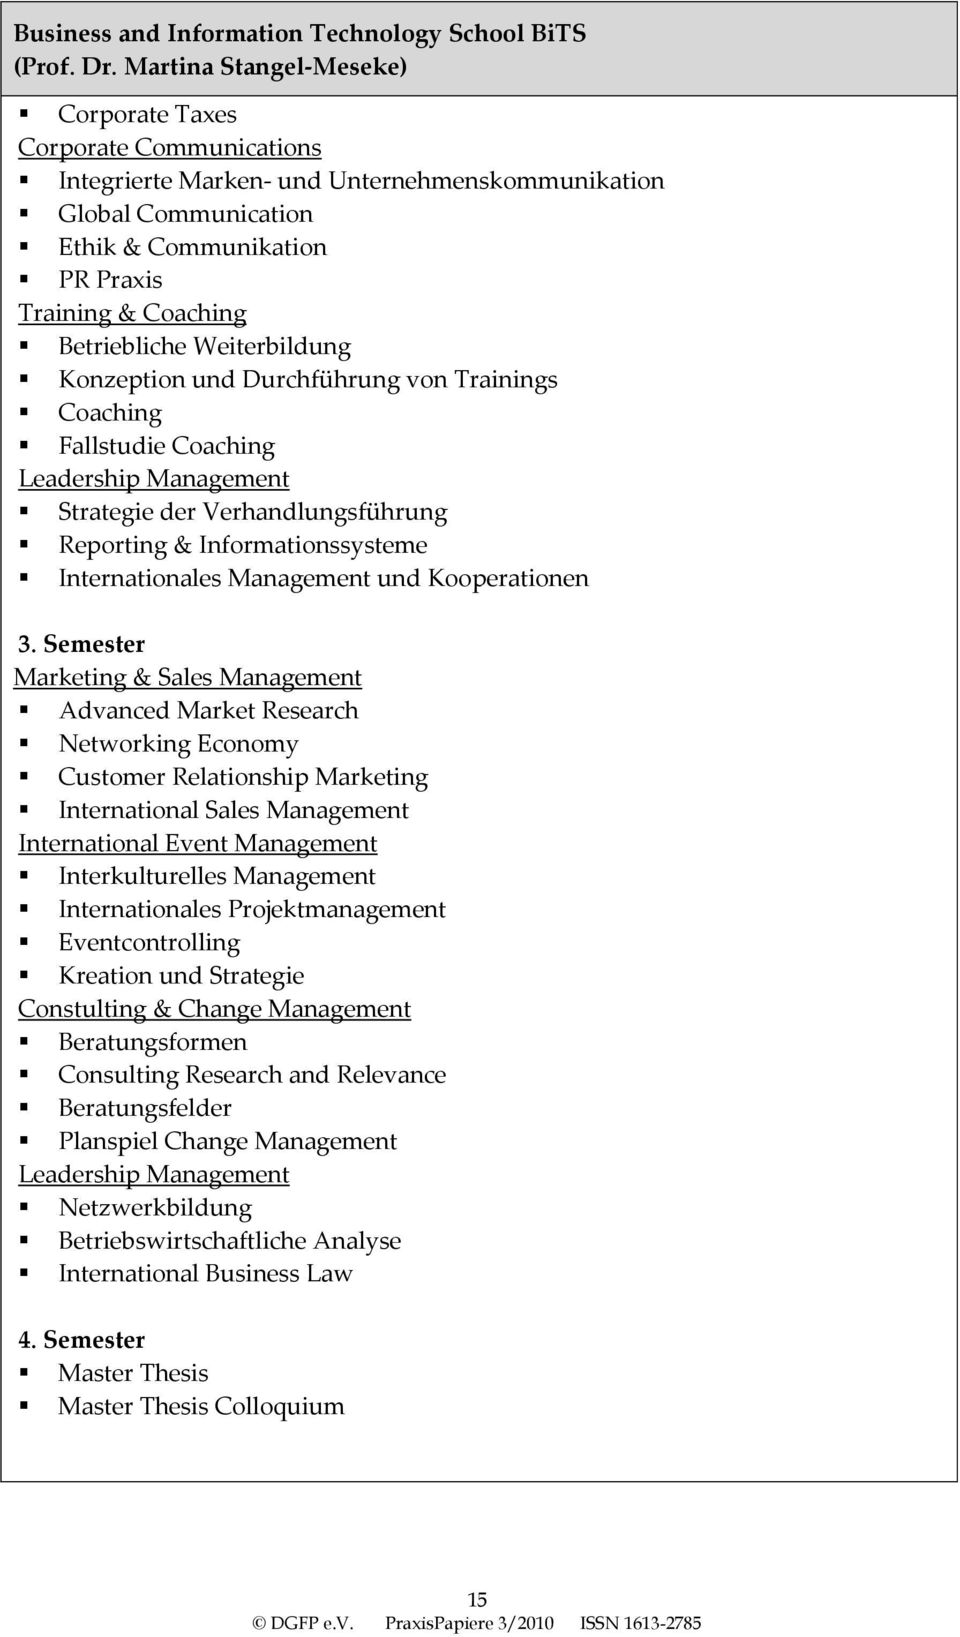 KonzeptionundDurchführungvonTrainings Coaching FallstudieCoaching LeadershipManagement StrategiederVerhandlungsführung Reporting&Informationssysteme InternationalesManagementundKooperationen 3.